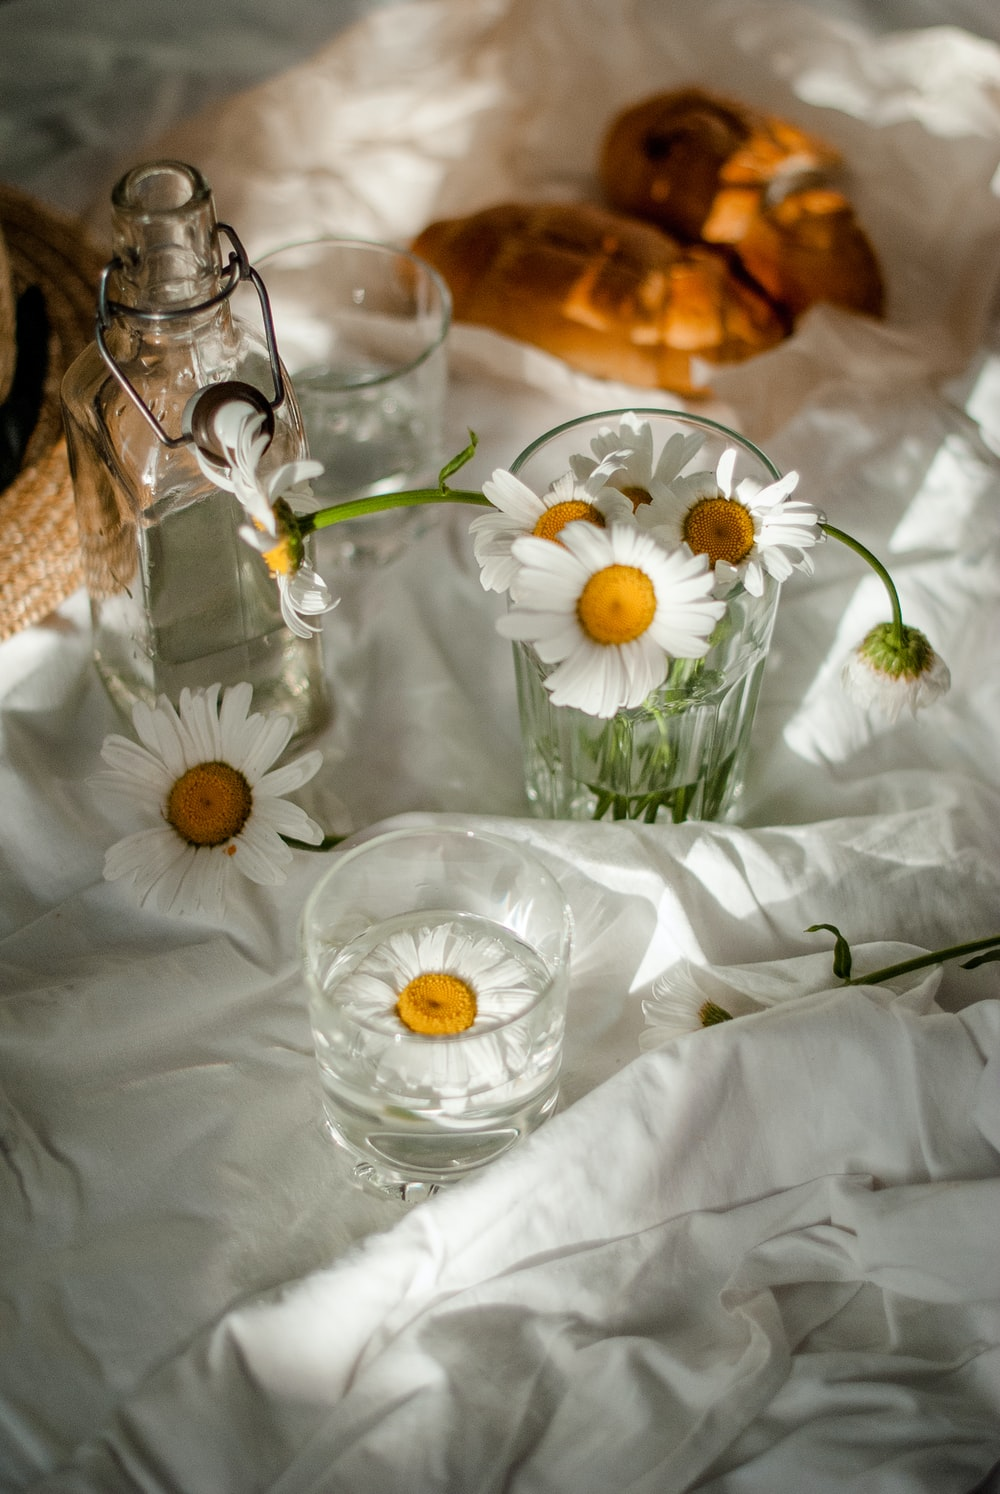 white daisy flowers in clear glass vase